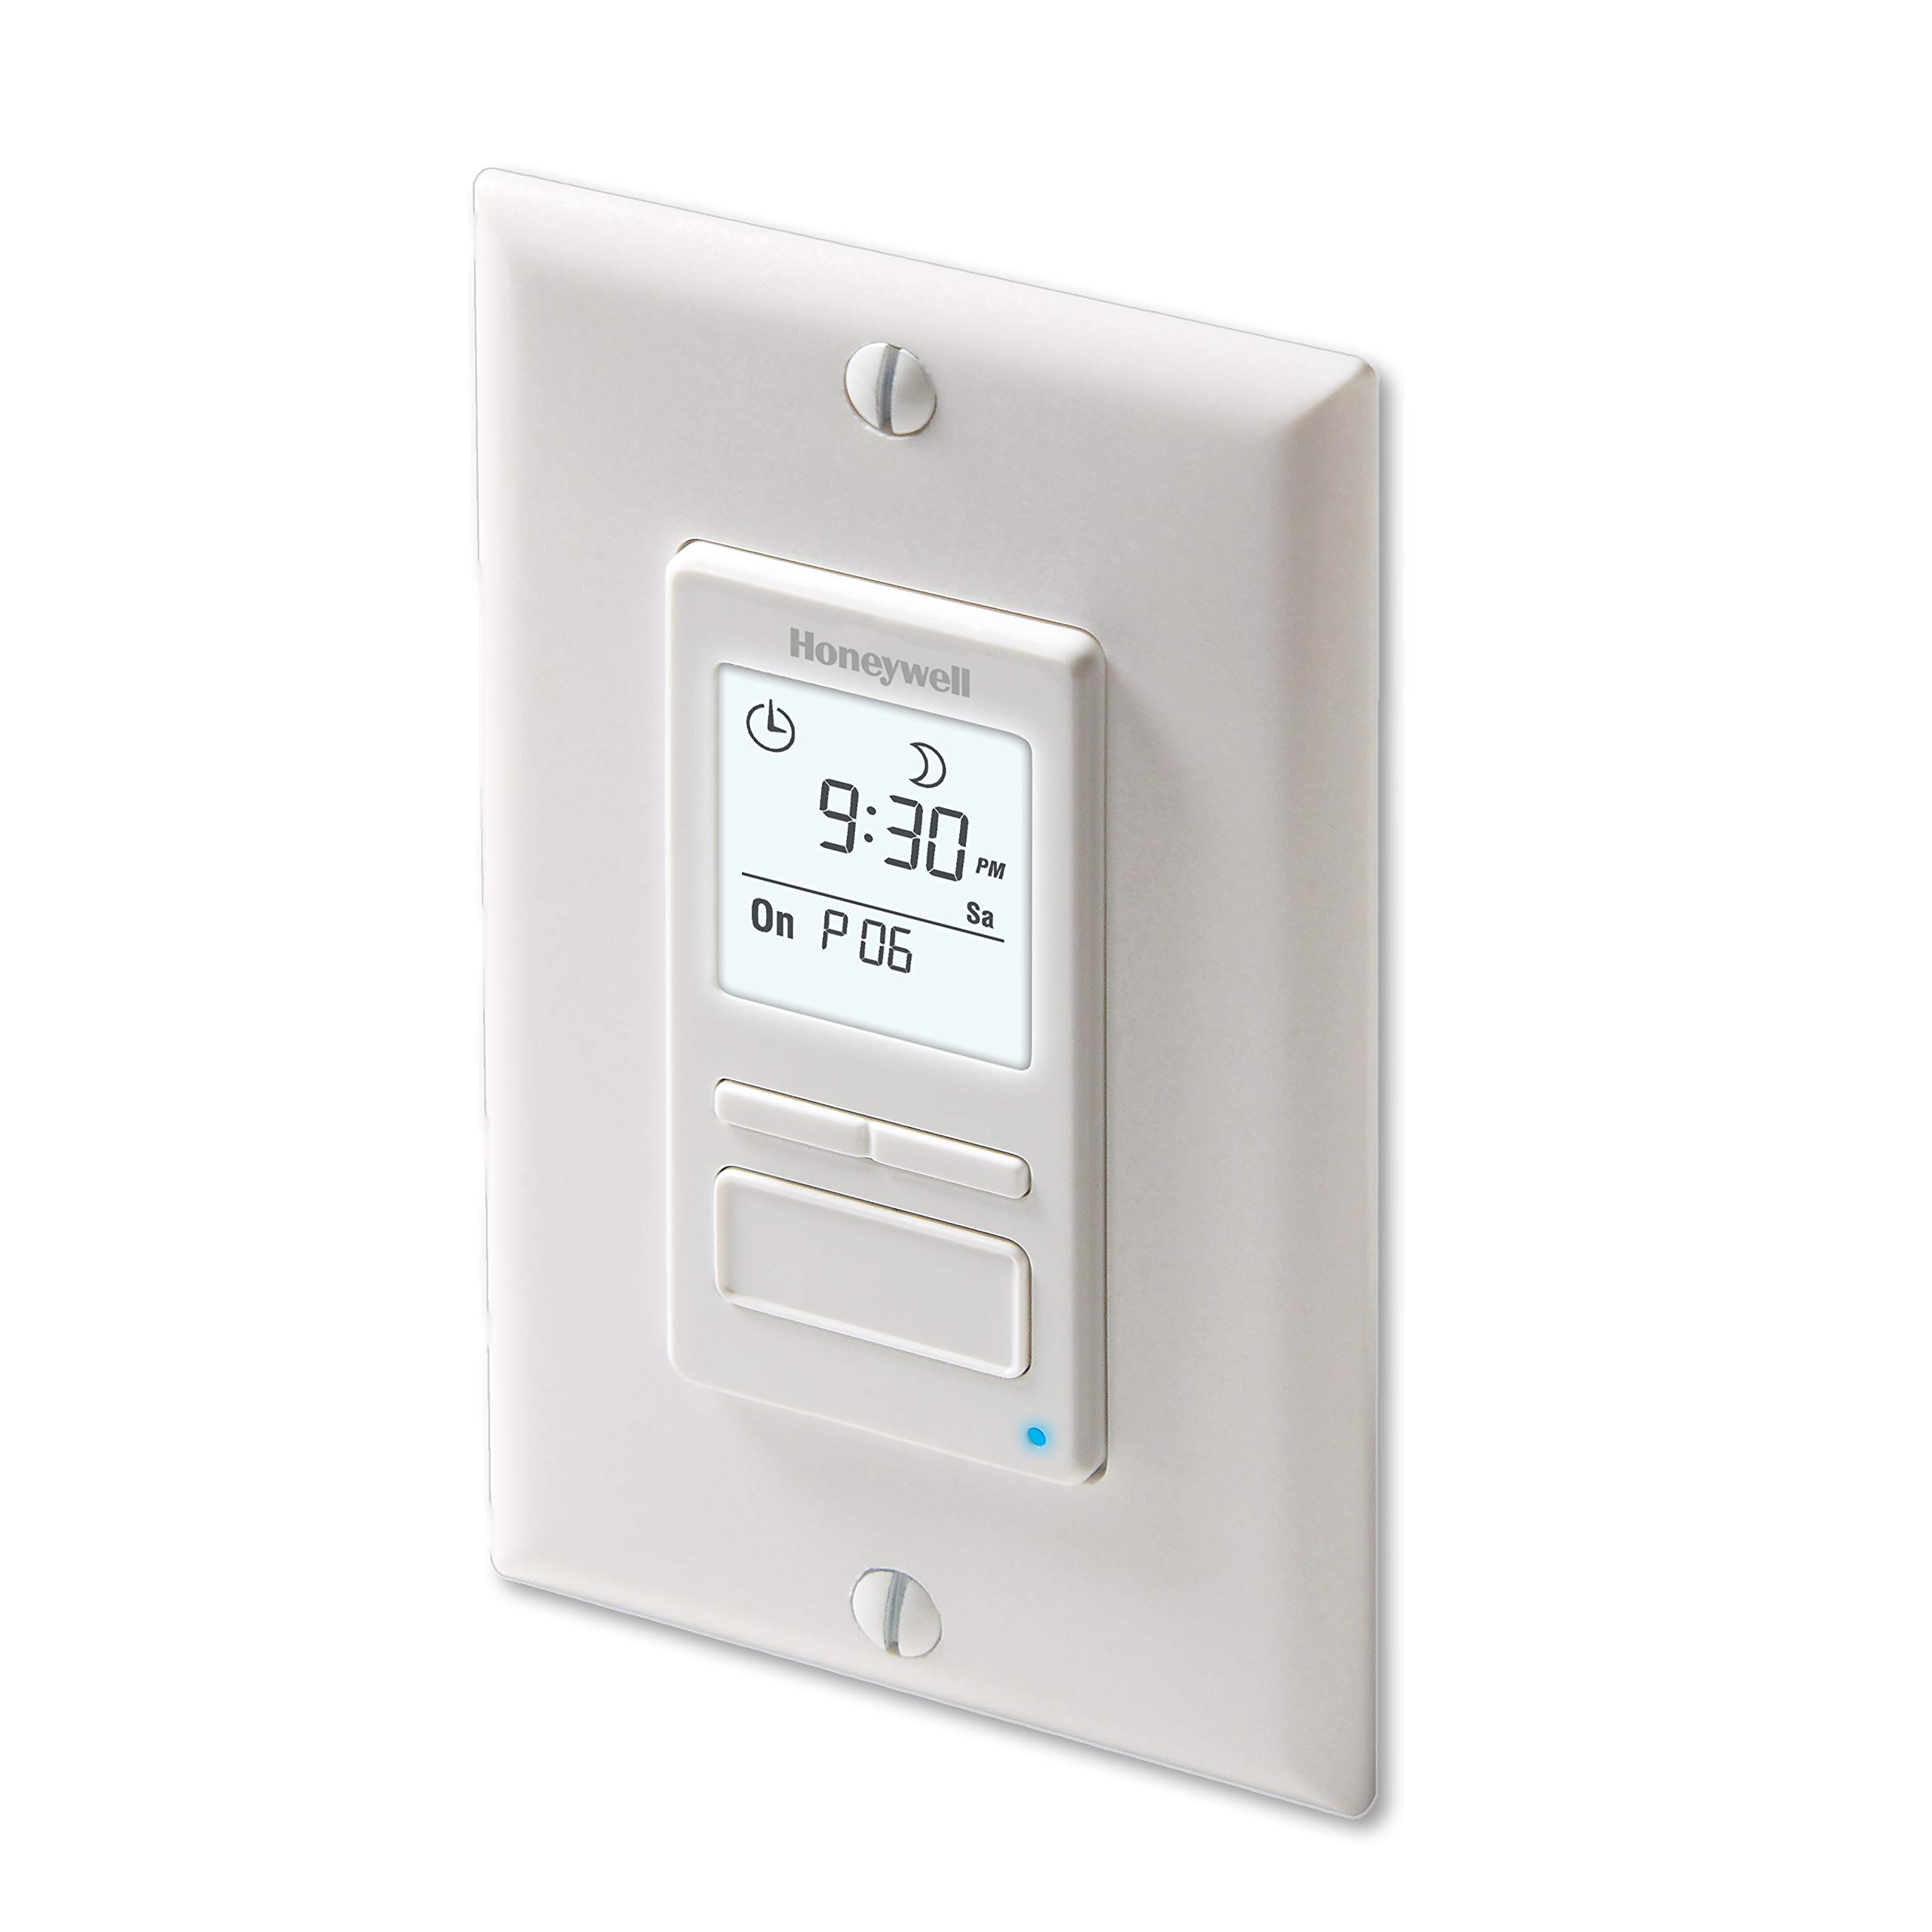 Honeywell Home RPLS740B1008 Econoswitch 7-Day Programmable Light Switch Timer, White by Honeywell